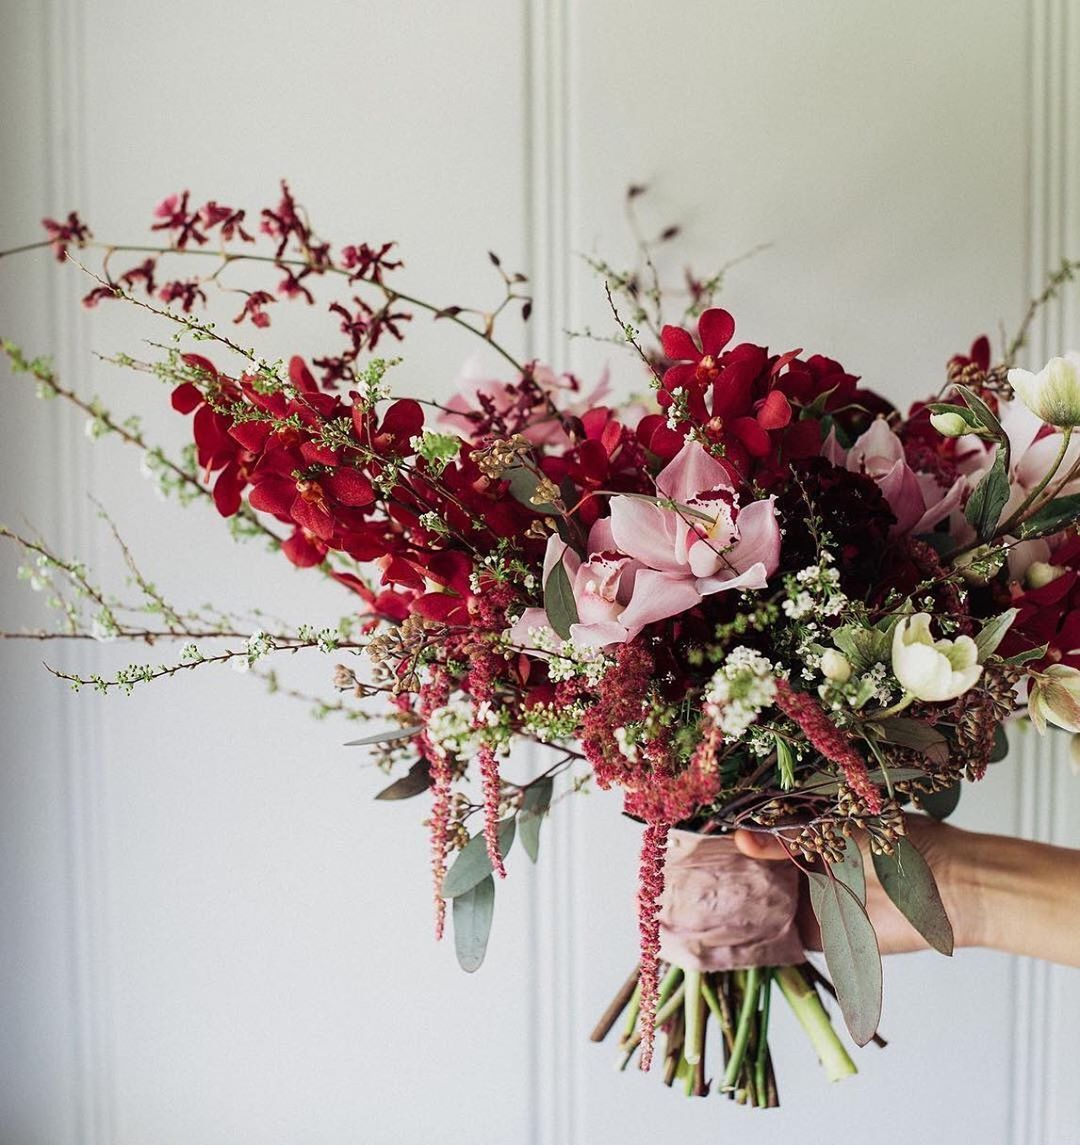 """Designs by Hemingway on Instagram """"CURATED BOUQUETS"""